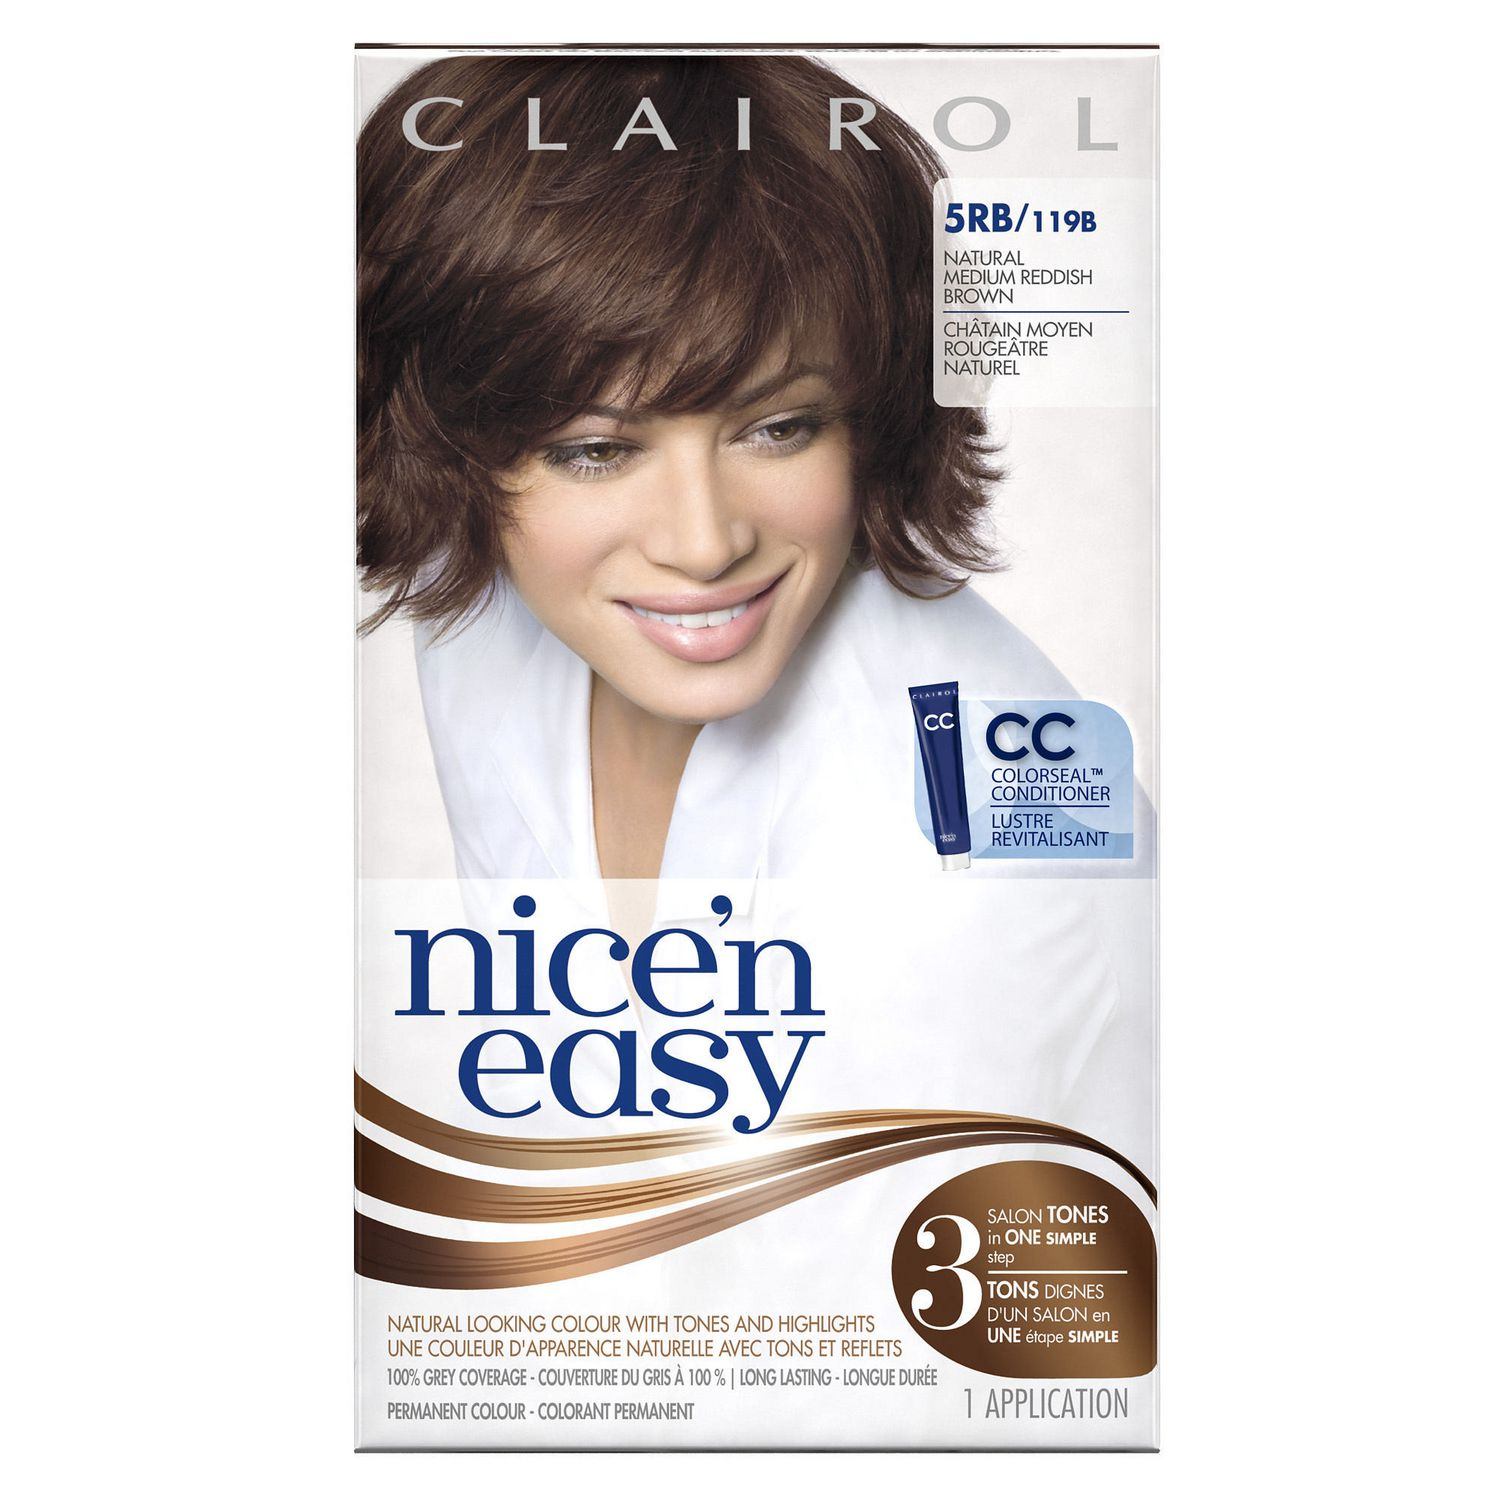 clairol nicen easy hair colour 1 kit walmartca - Clairol Nice And Easy Colors